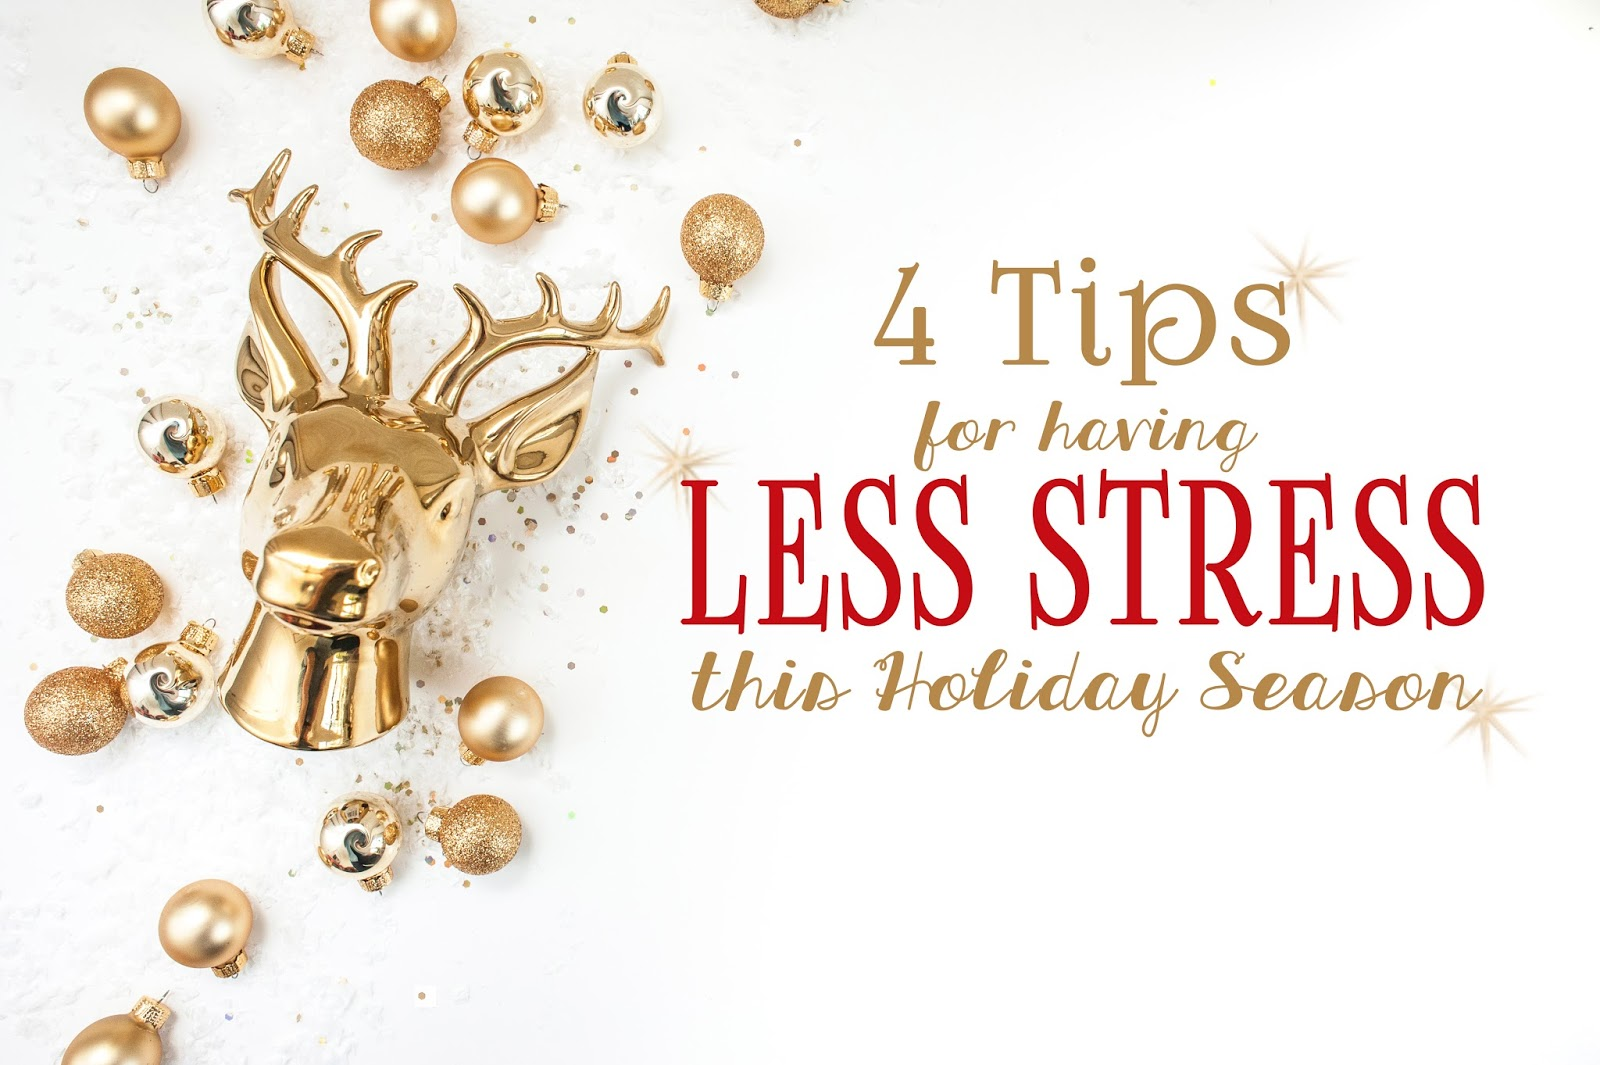 4 Tips for having Less Stress this holiday season